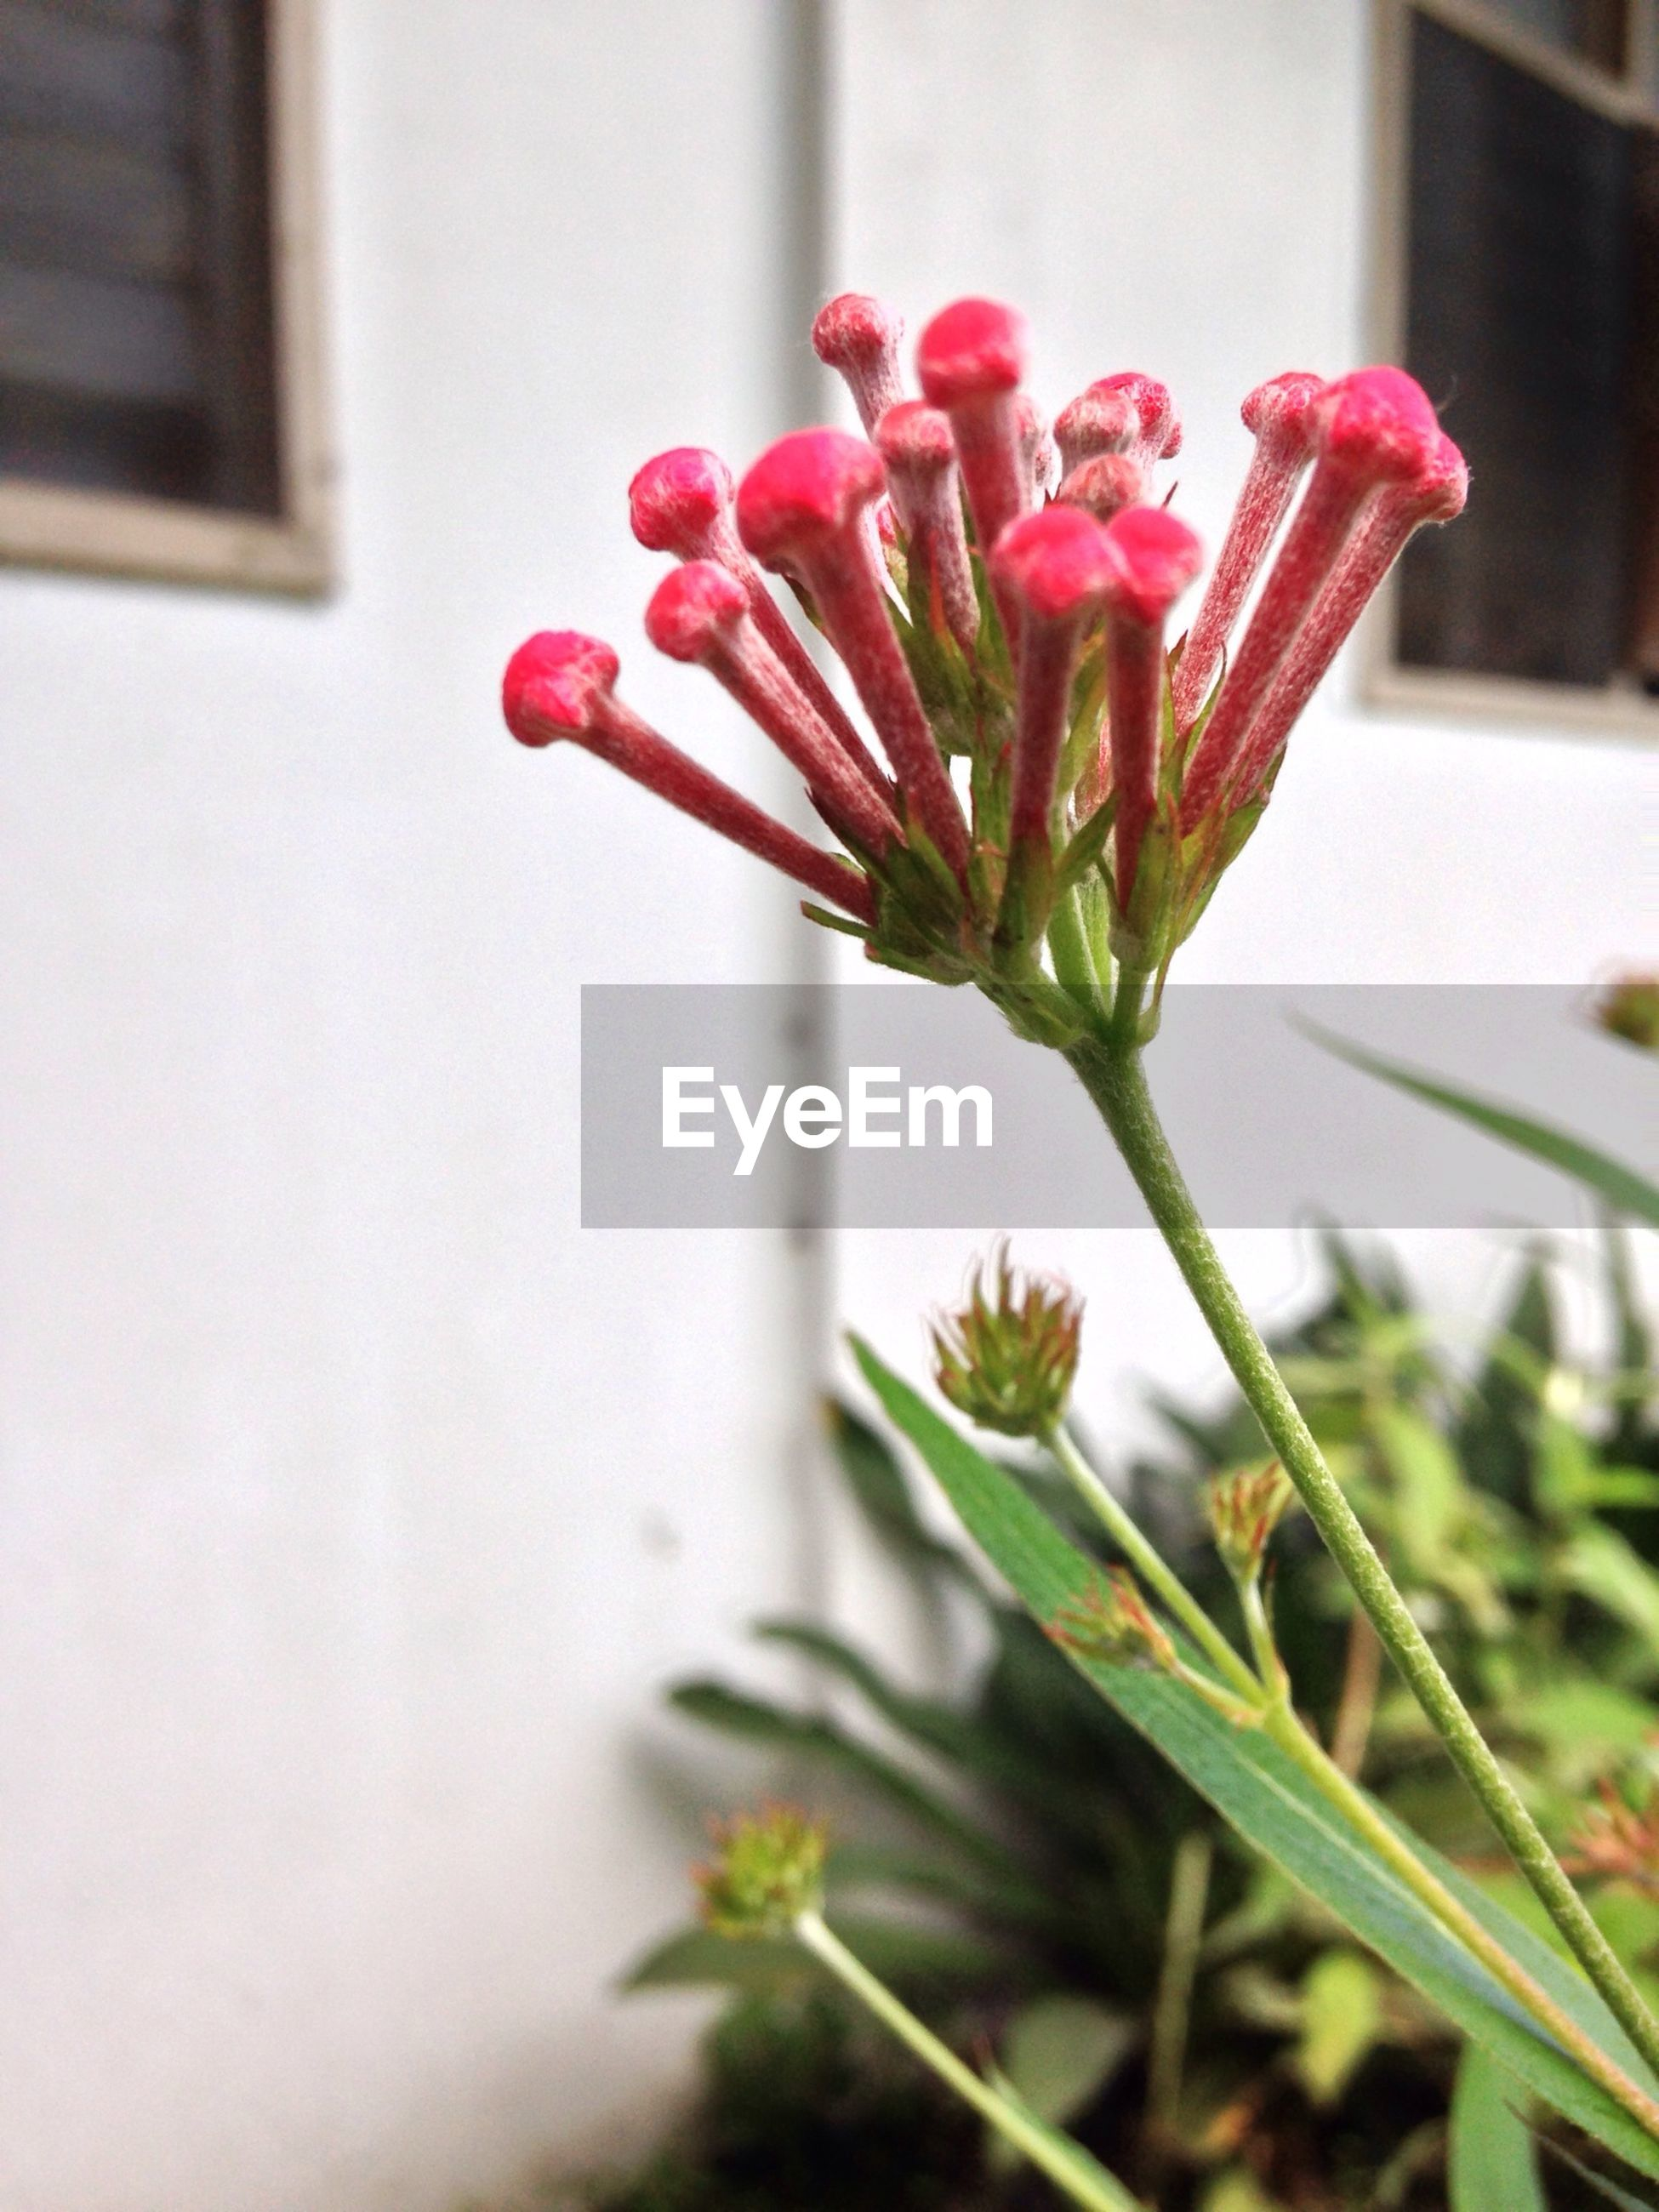 flower, petal, fragility, freshness, flower head, growth, stem, plant, close-up, beauty in nature, focus on foreground, nature, indoors, potted plant, blooming, pink color, bud, single flower, leaf, selective focus